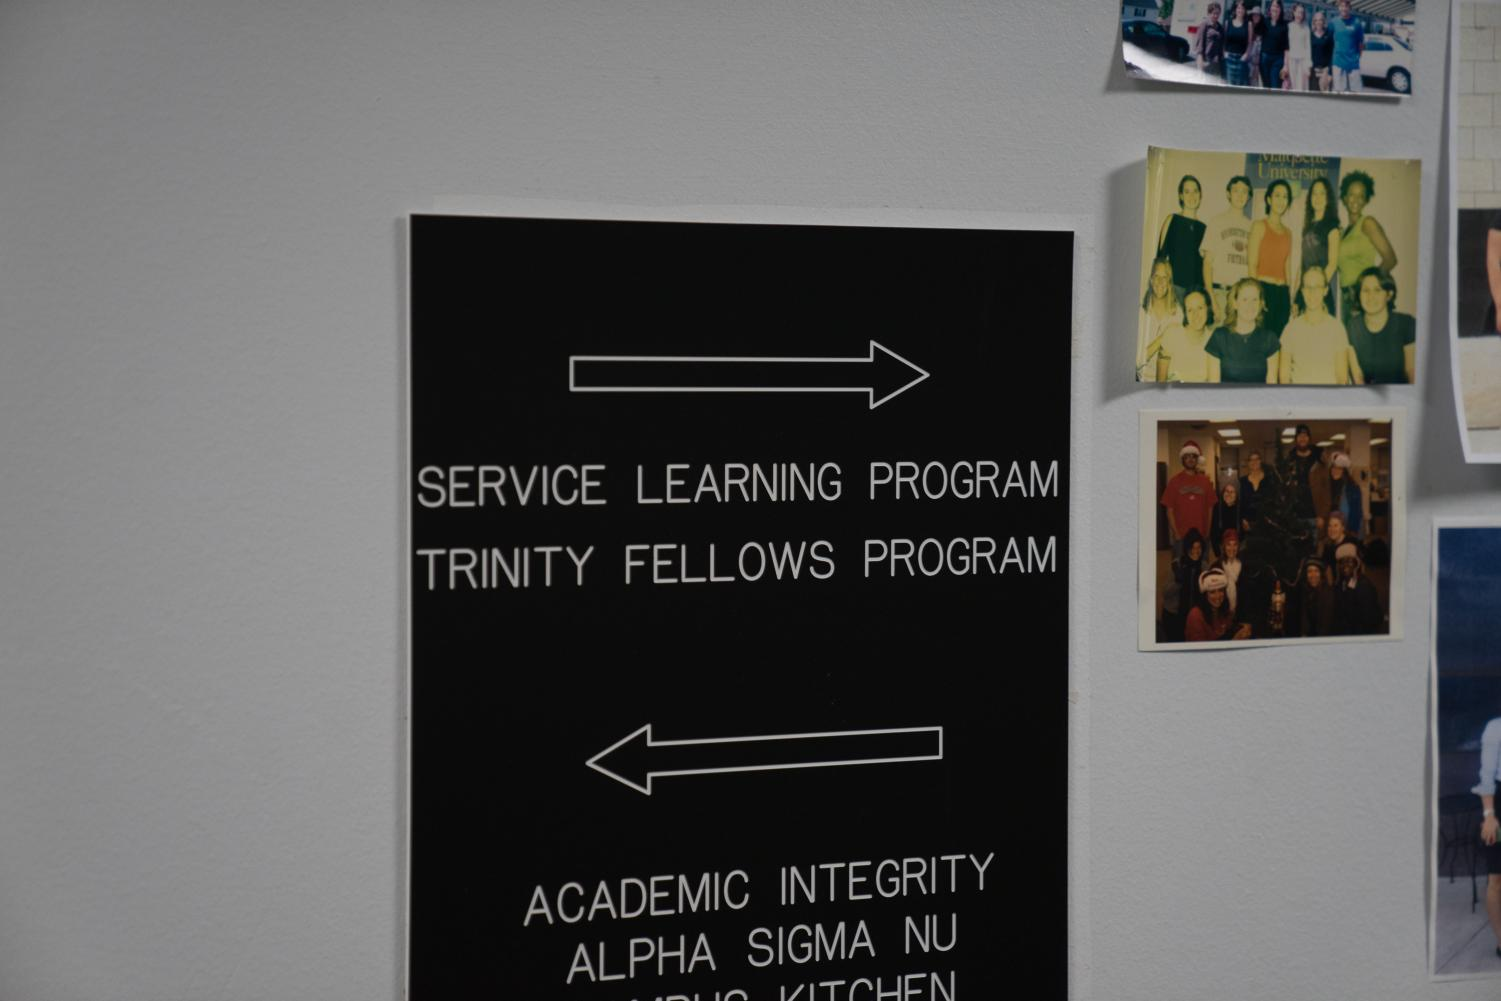 The Trinity Fellows program is being recognized by the Peace Corps.